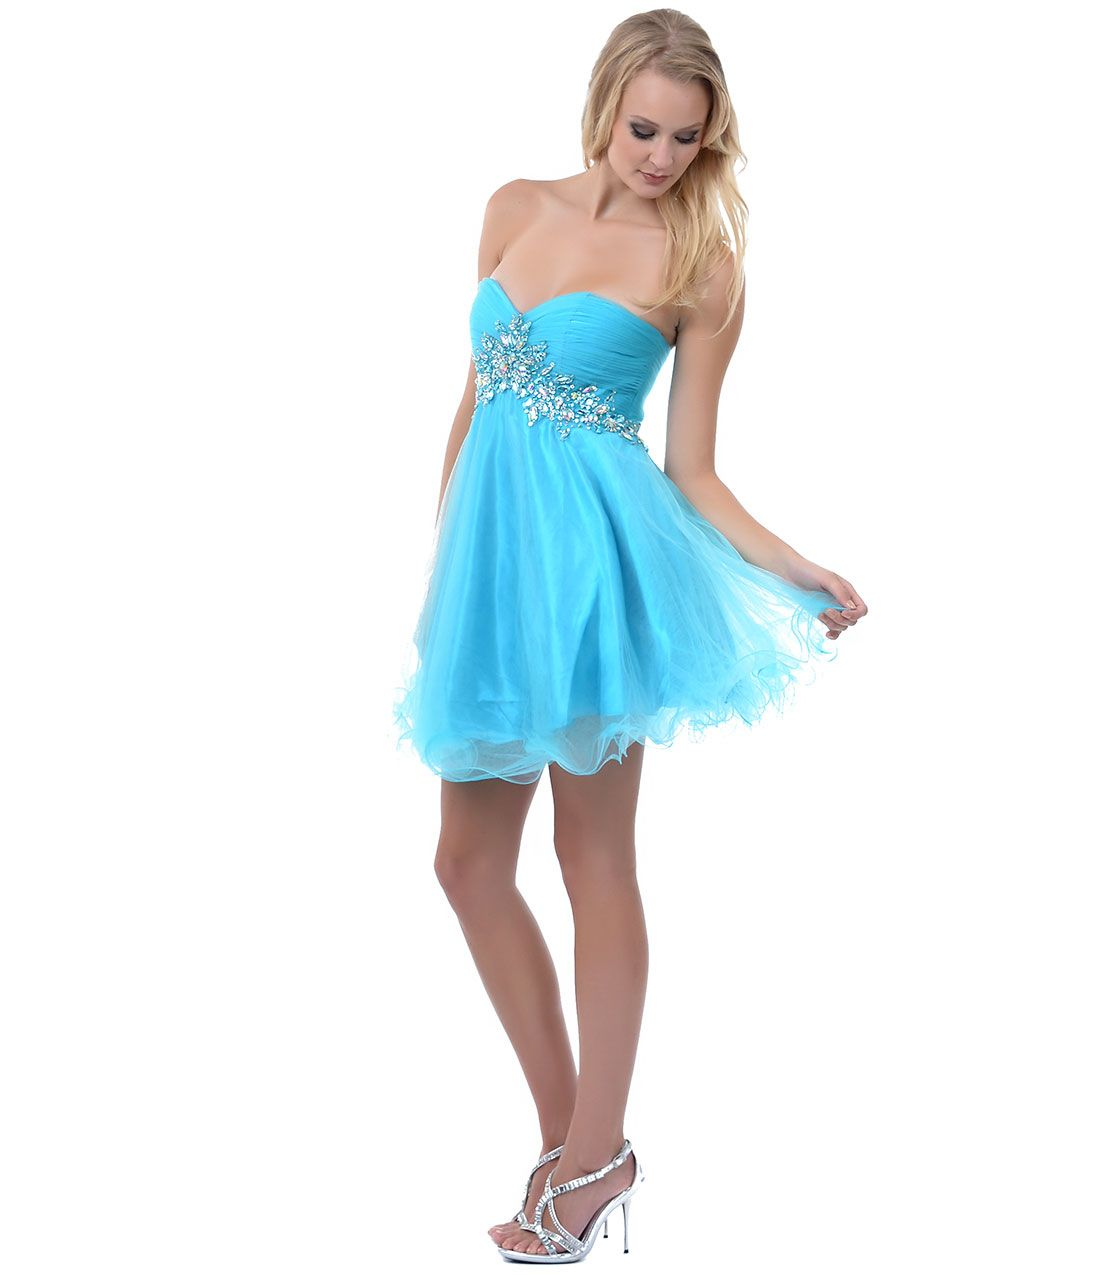 Cute Short Prom Dresses 2014 | Short similar Image and photo in ...